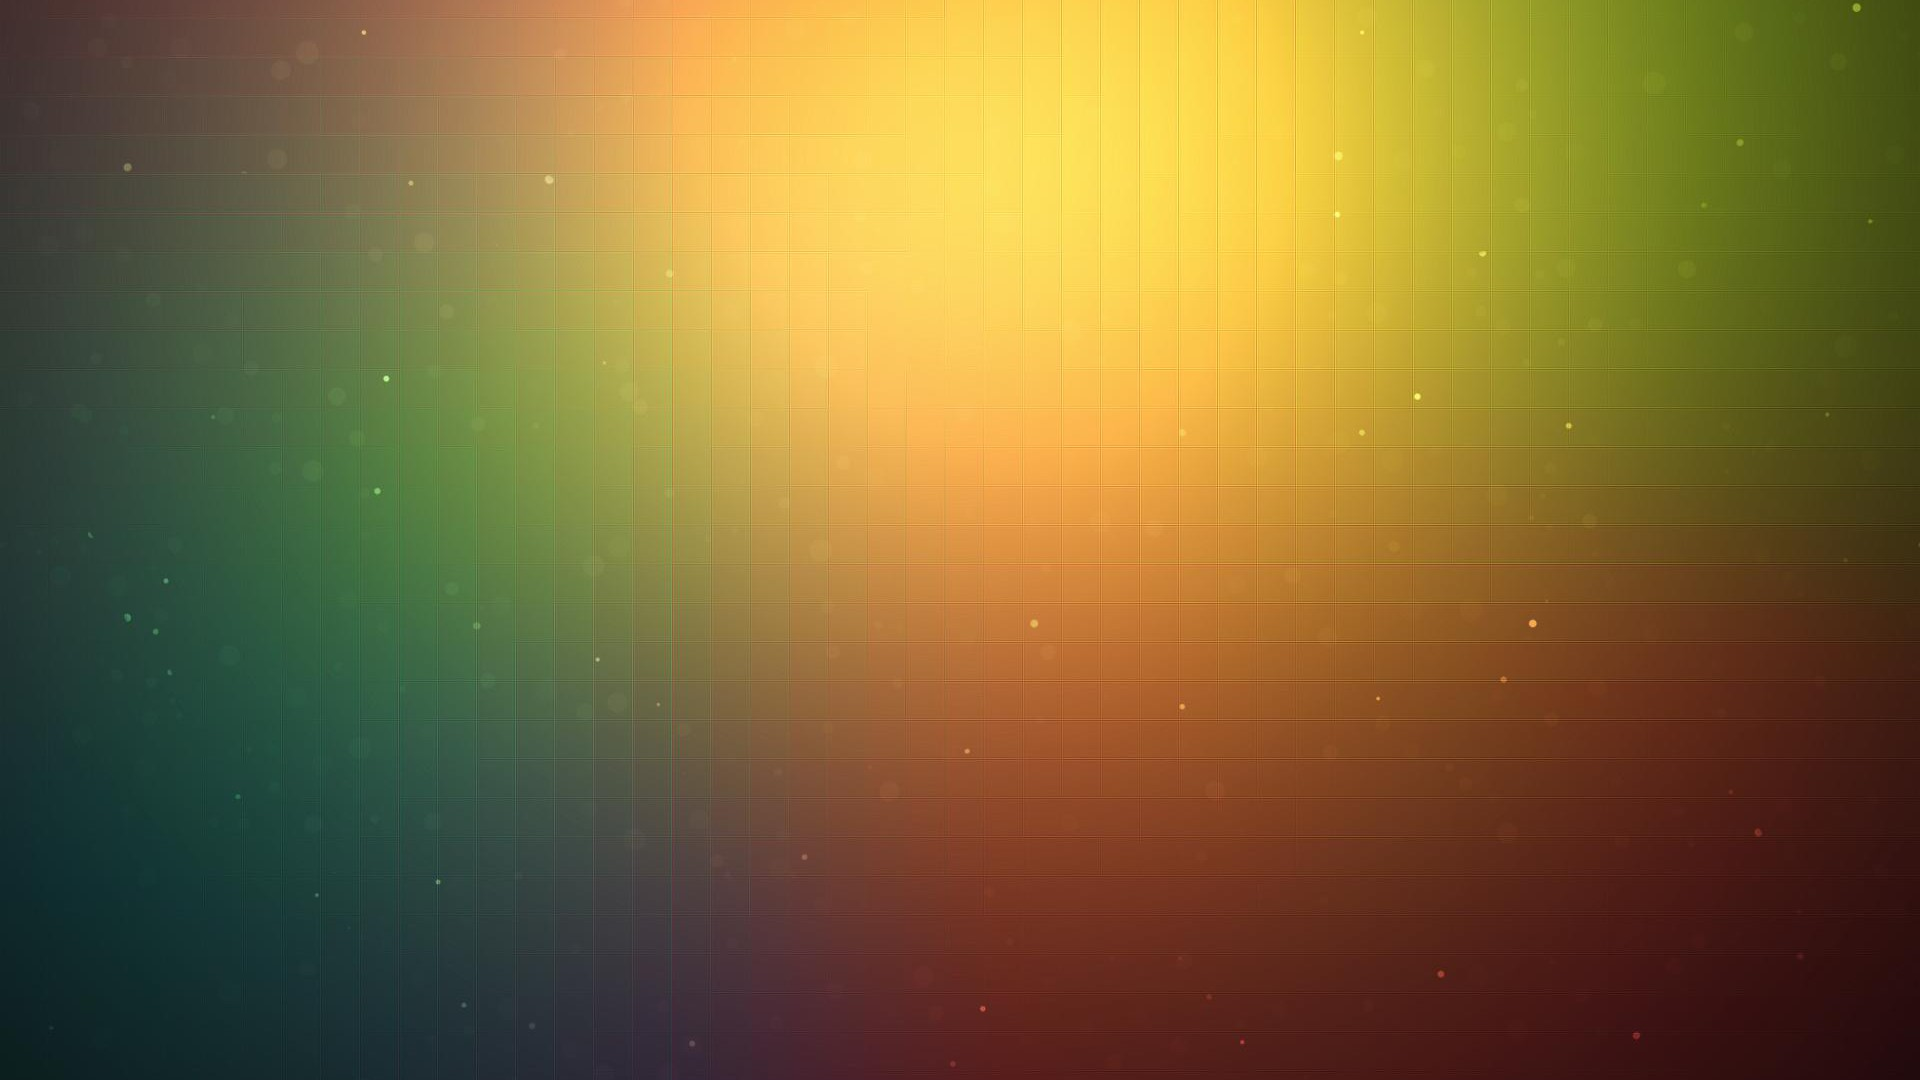 Simple Wallpaper HD